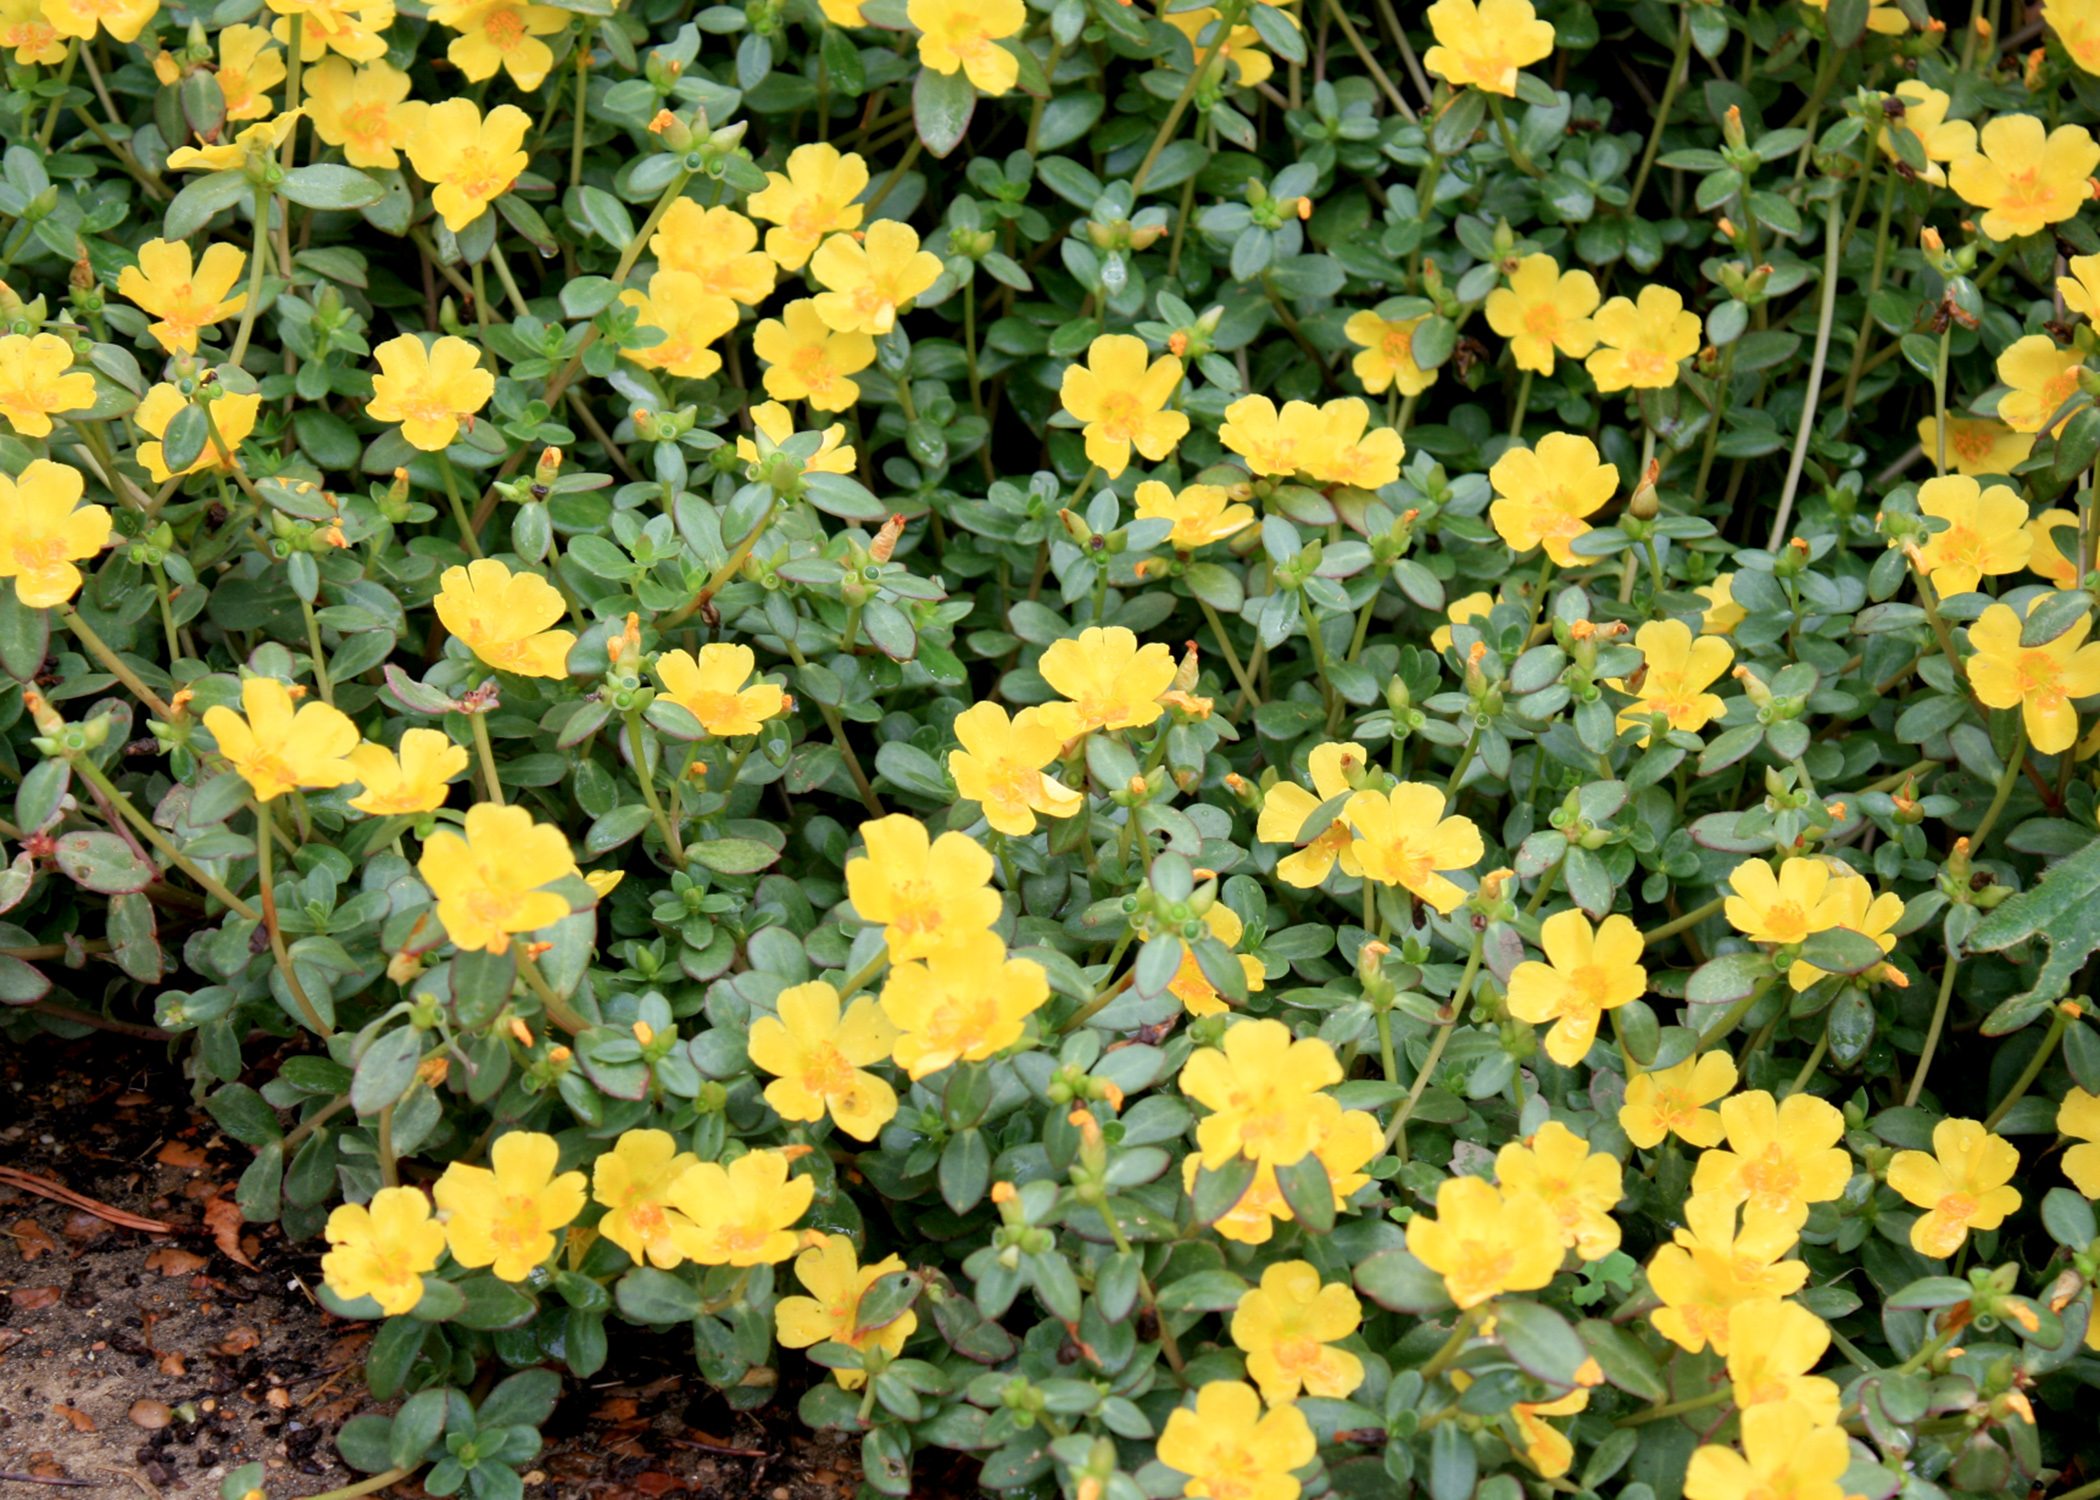 Purslane Is A Low Growing Succulent Looking Annual That Makes Good Ground